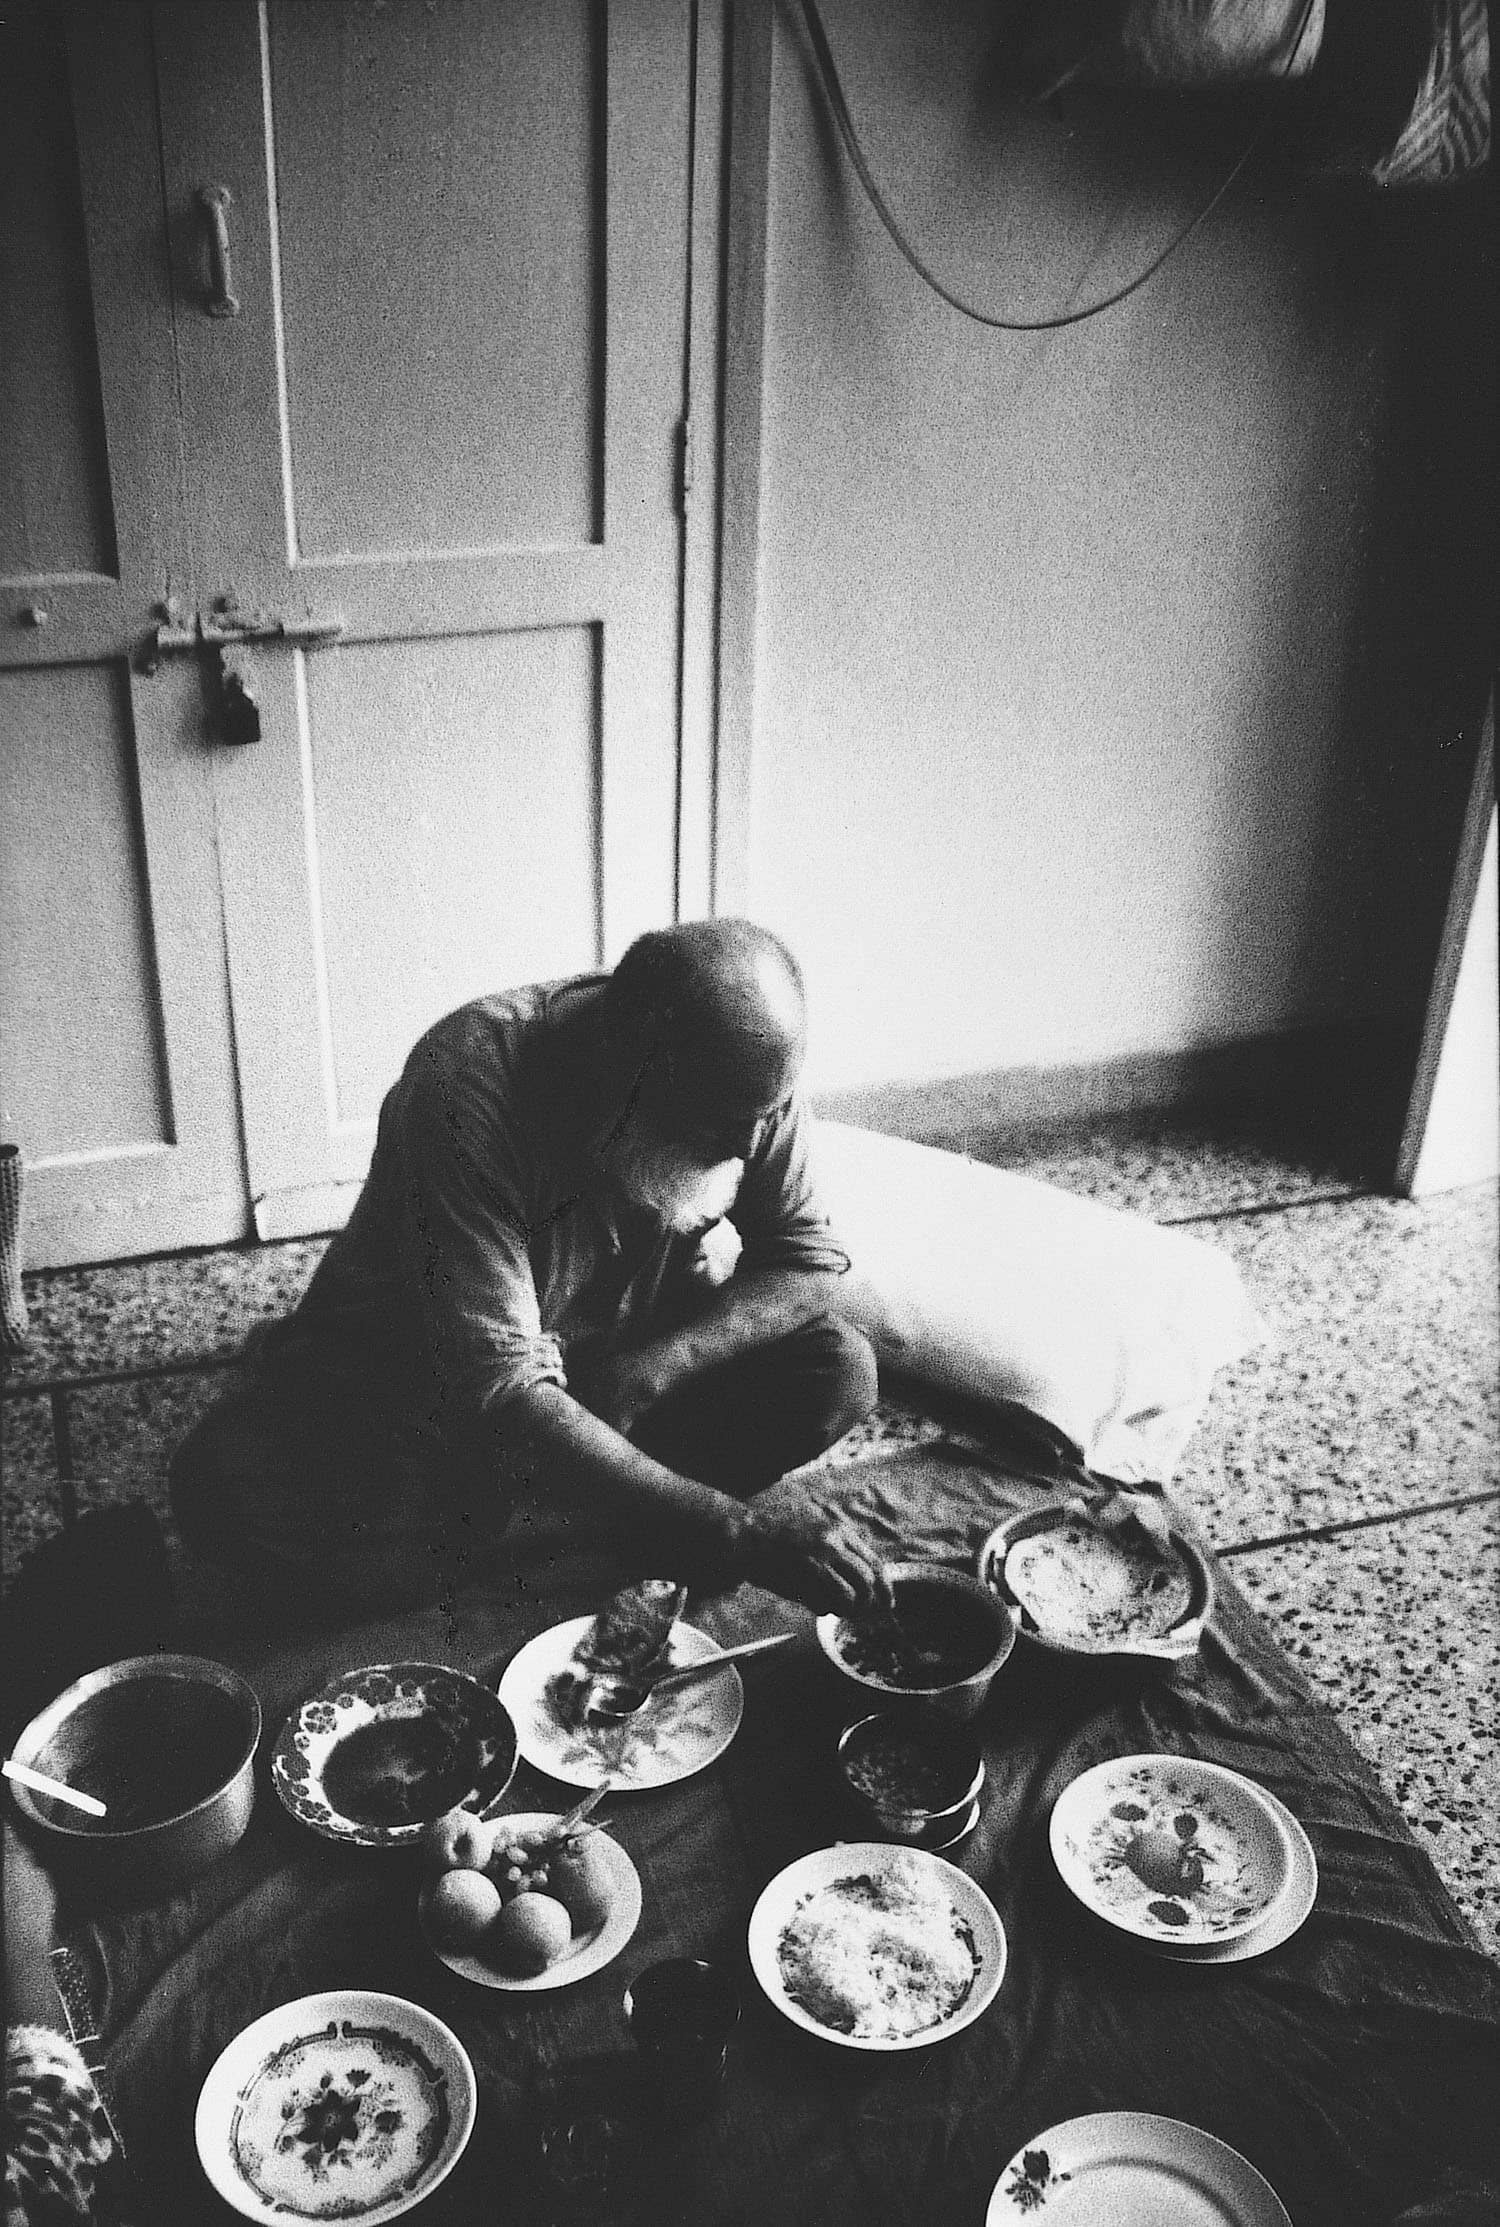 Edhi, during a rare food break at his home. Edhi routinely had fruits with his lunch. —Photo by Arif Mahmood/White Star